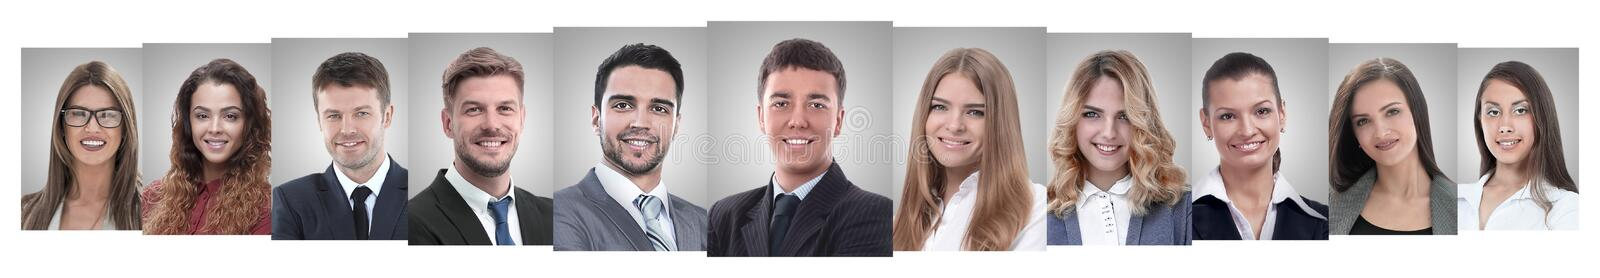 Panoramic collage of portraits of successful business people stock photo